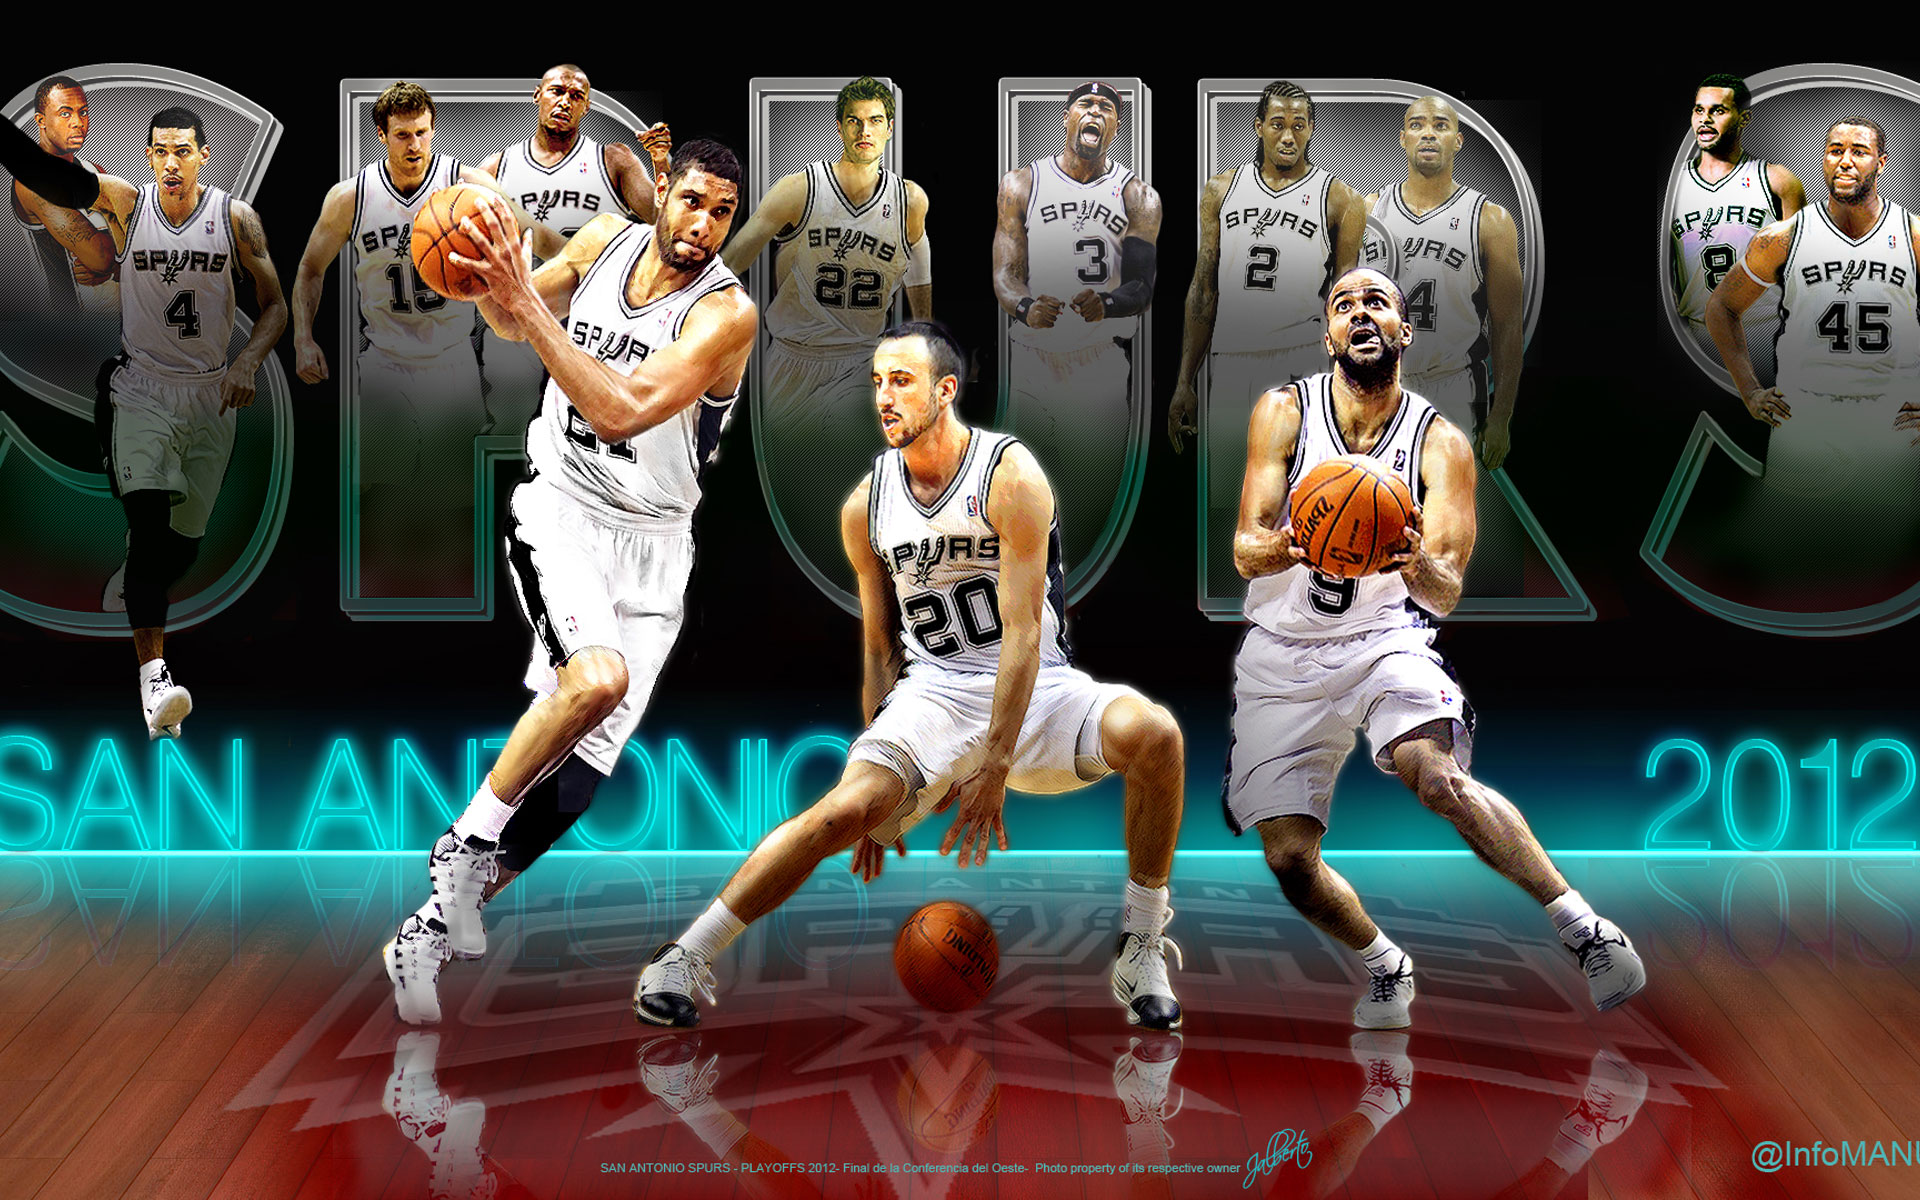 Free Download Wallpapers San Antonio Spurs Imagebankbiz 1920x1200